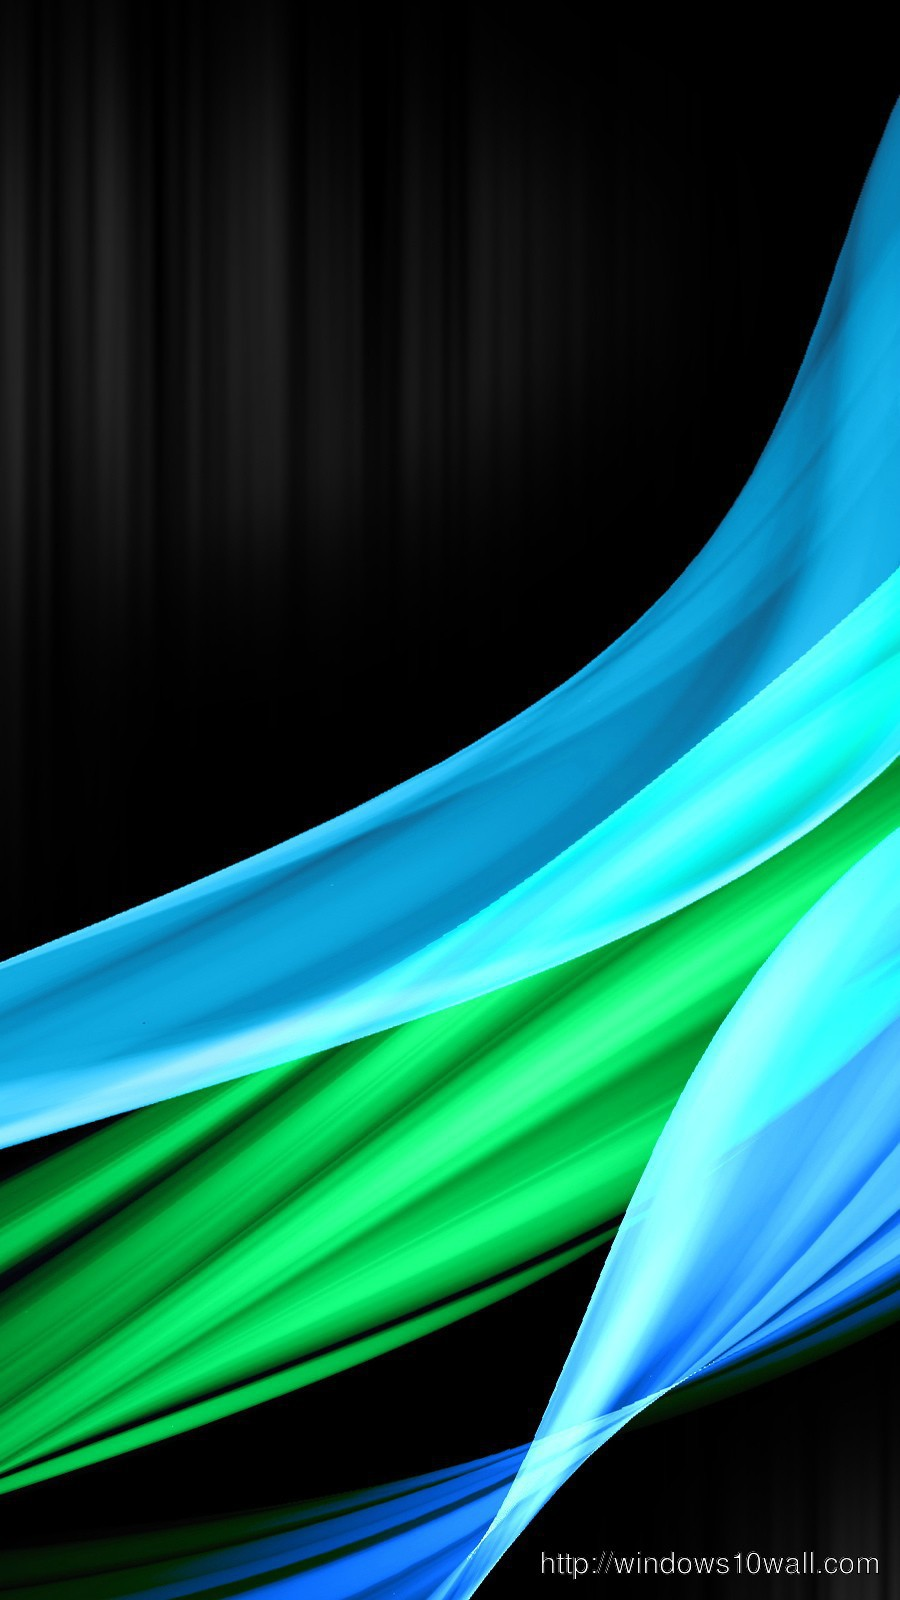 Blue and Green Wave iPhone 5s Background Wallpaper